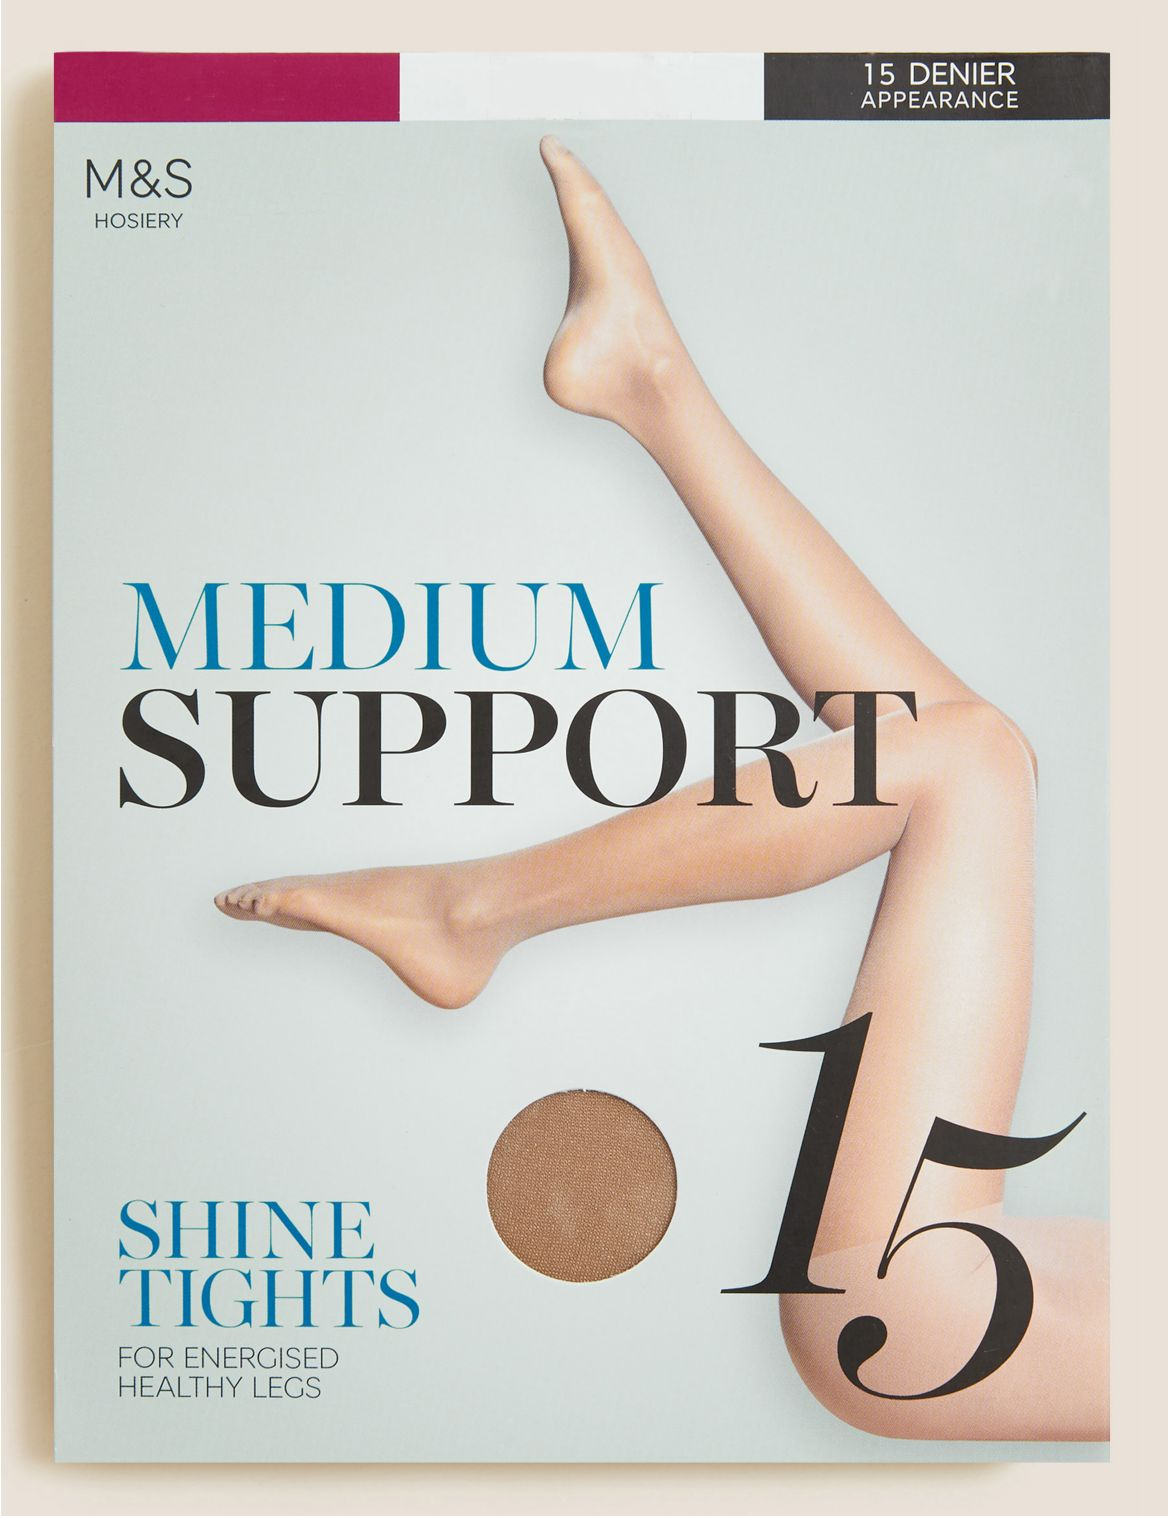 15 Denier Medium Support Sheer Tights natural tan